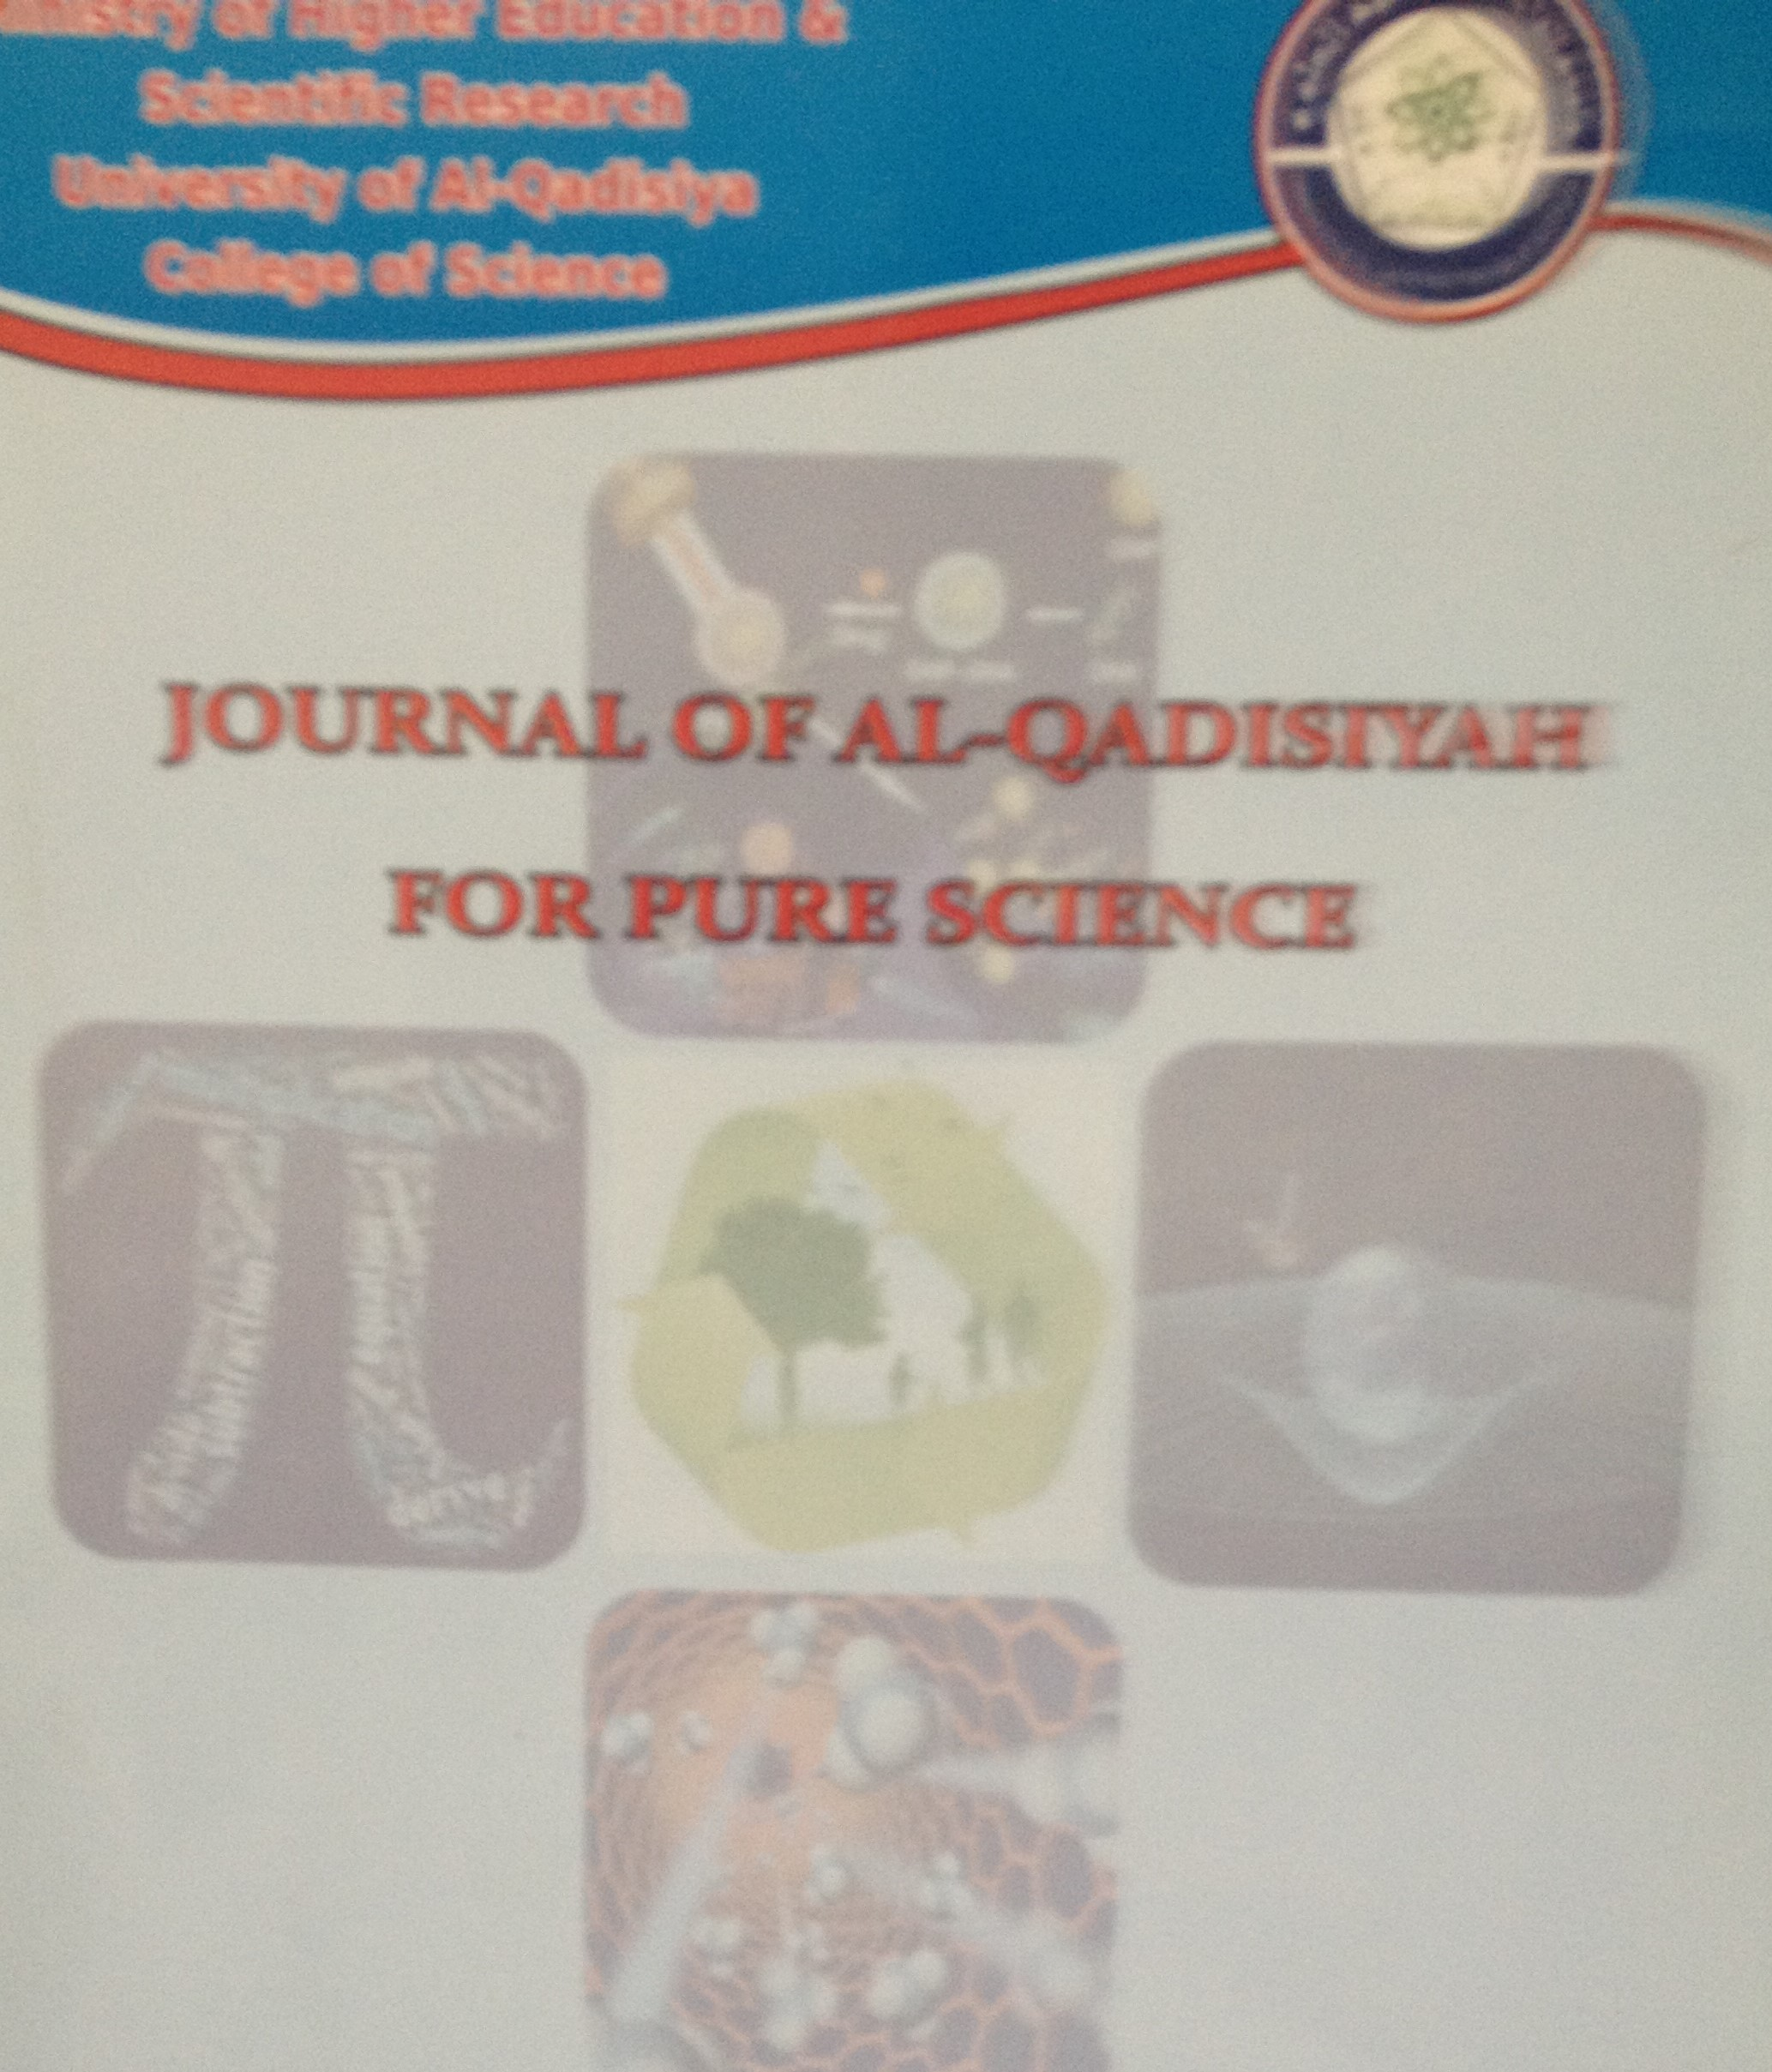 journal of al-qadisiyah for pure science(quarterly)